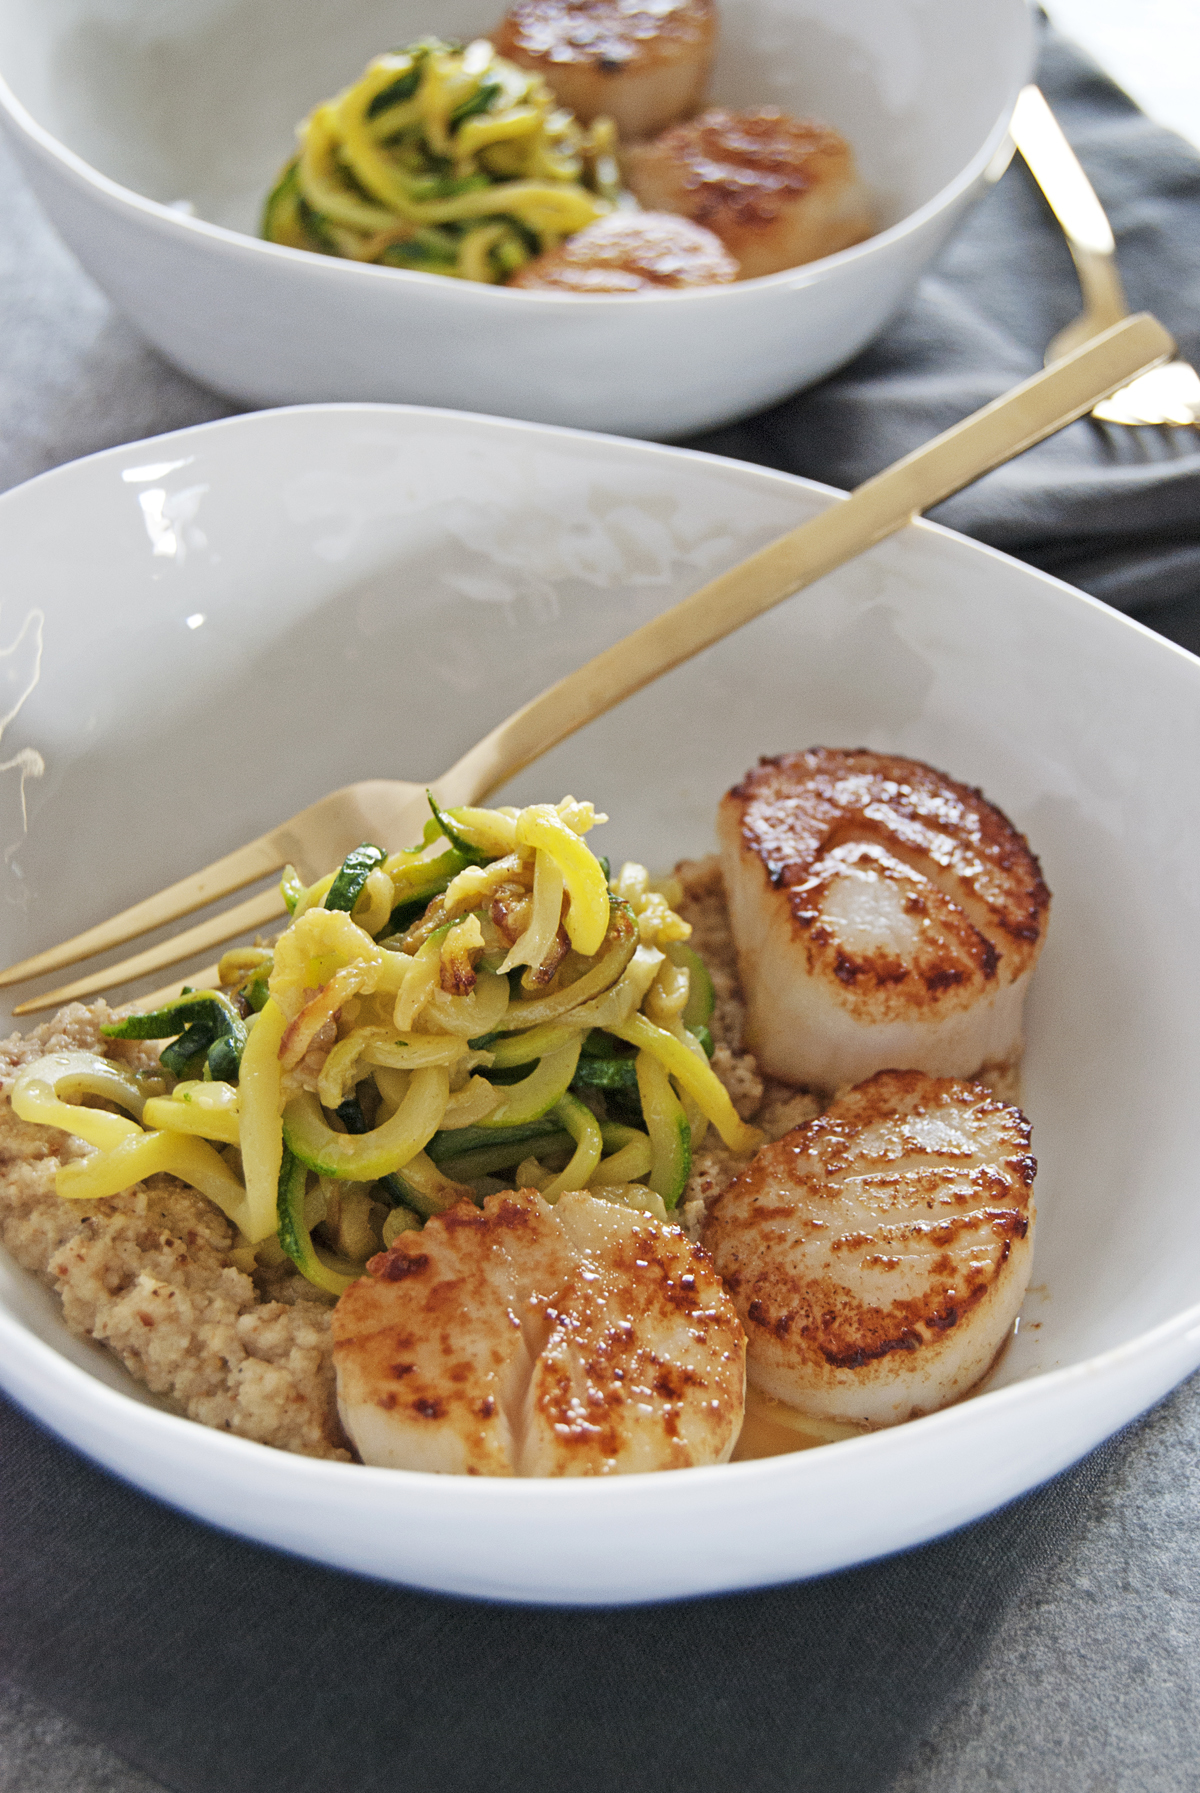 These beautiful seared scallops are paired with a tasty roasted cauliflower pesto and fresh zucchini noodles.